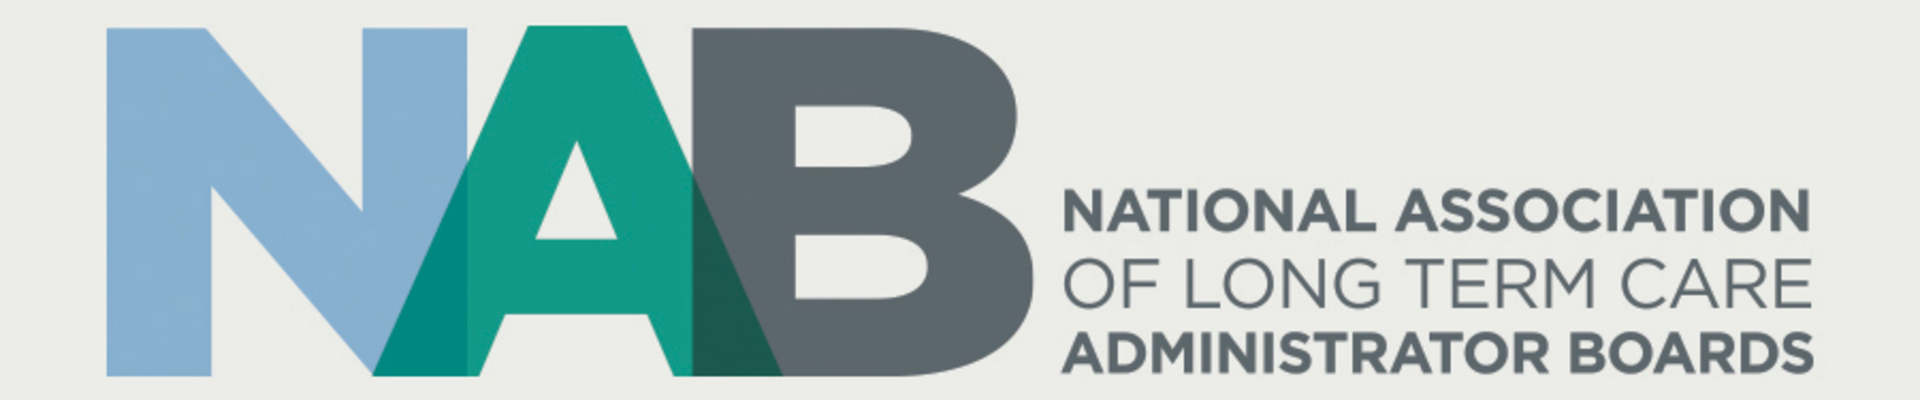 NAB National Association of long term care Administrator Boards